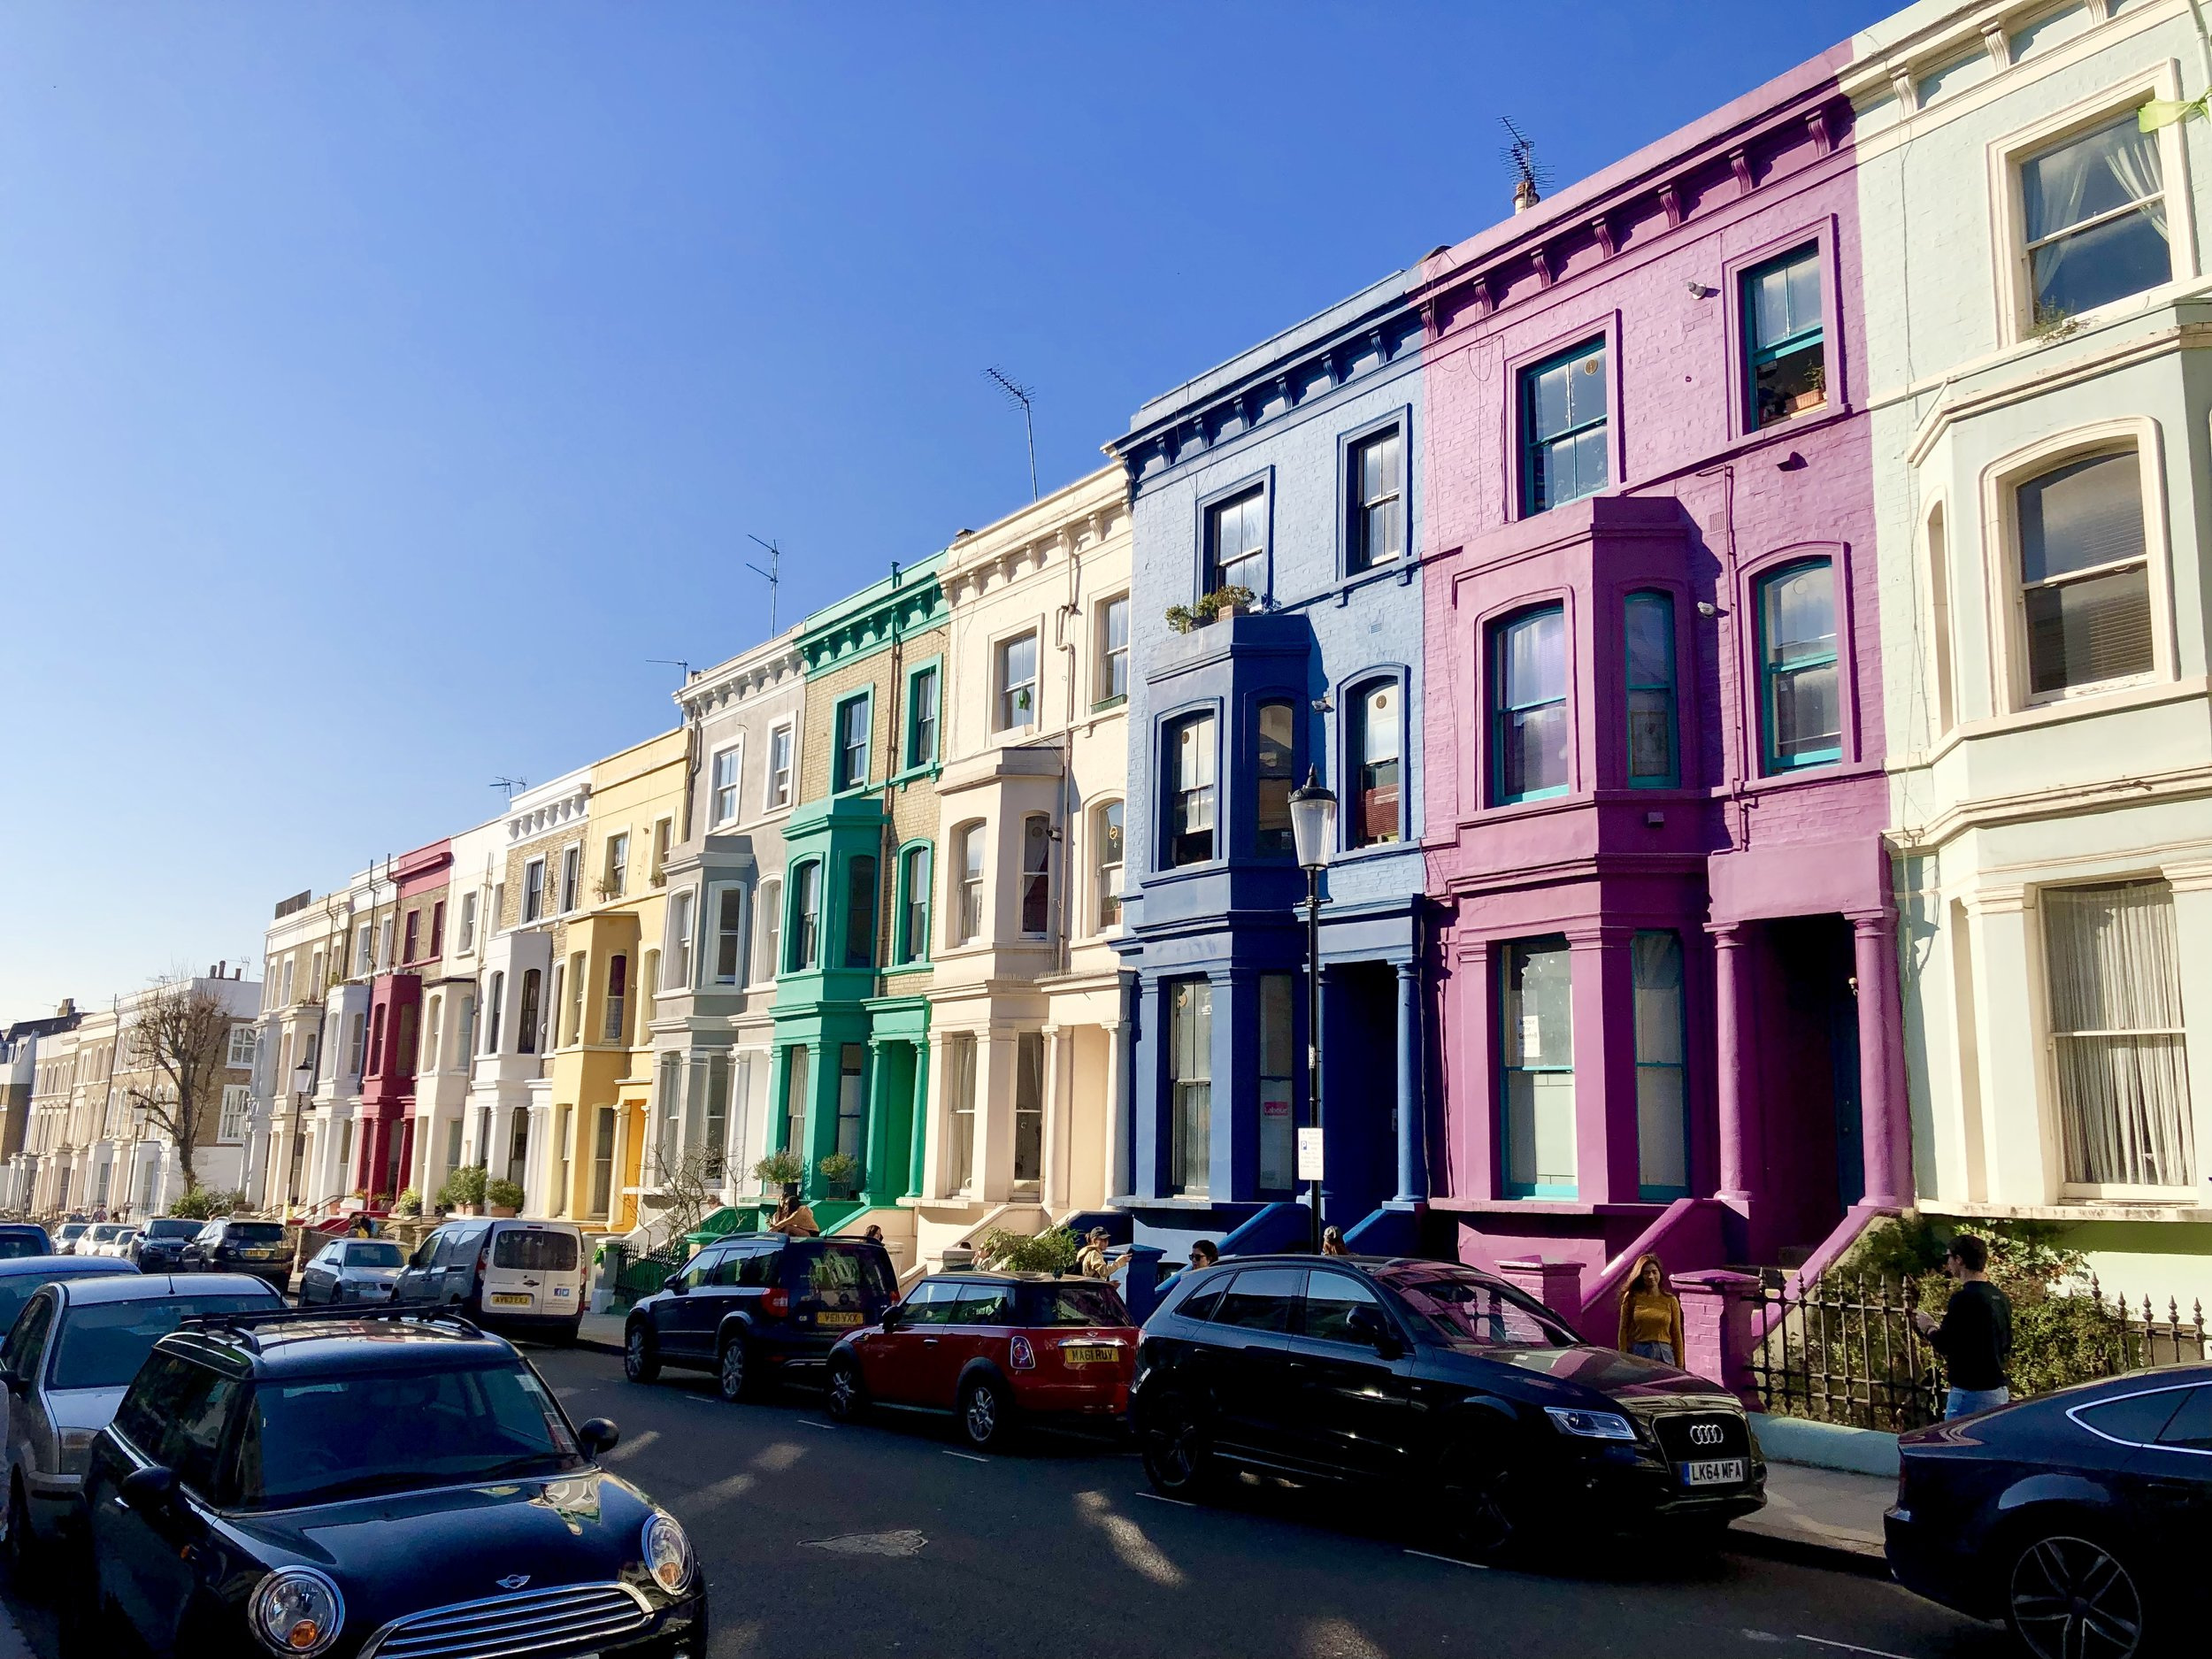 Notting Hill (London)